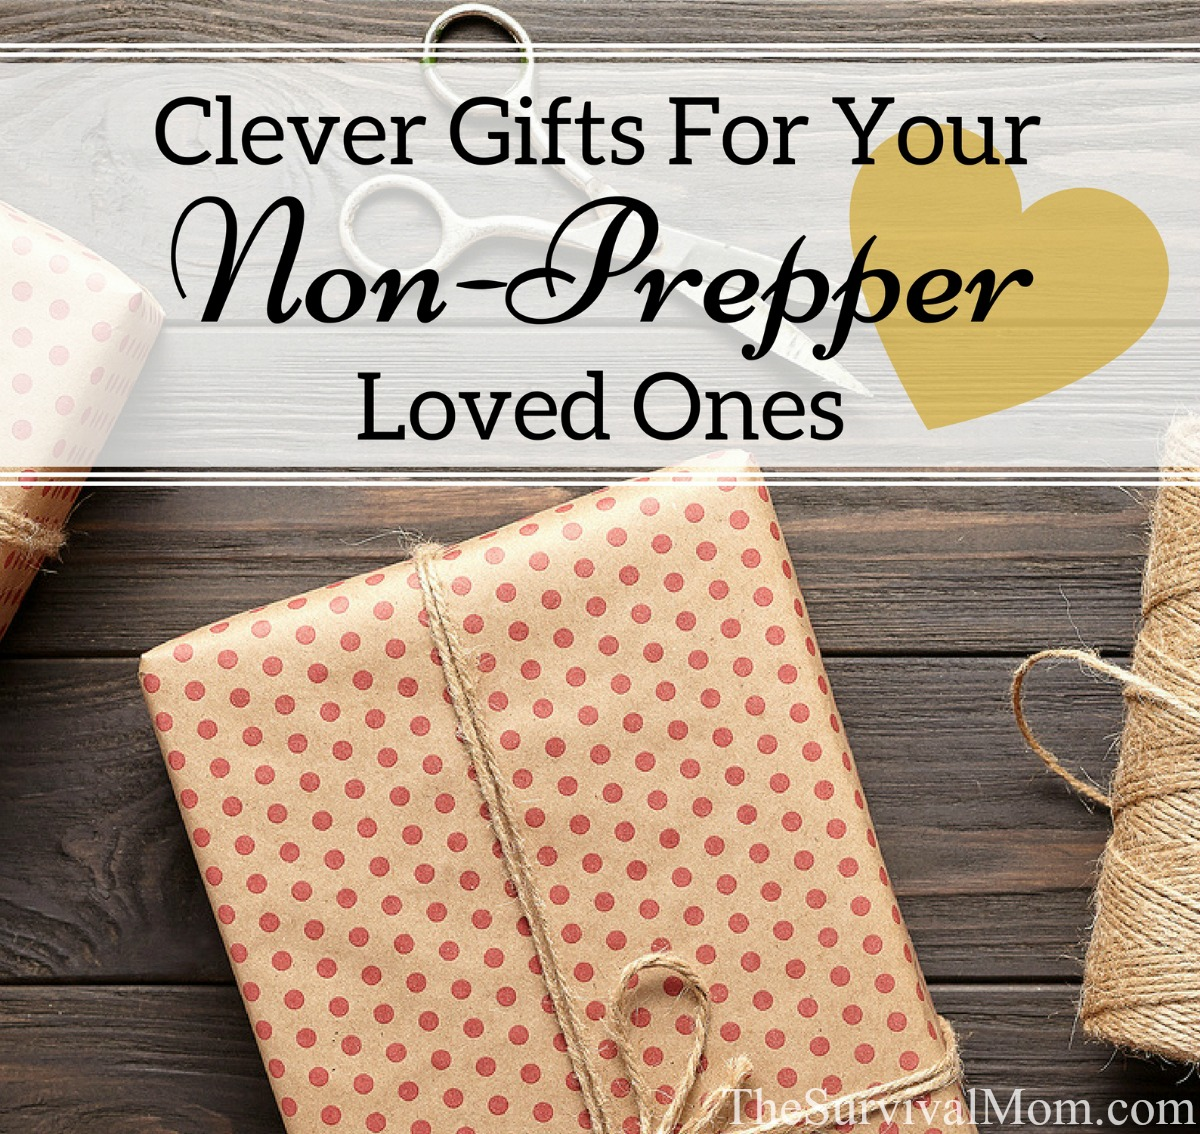 Clever Gifts For Your Non Prepper Loved Ones via The Survival Mom